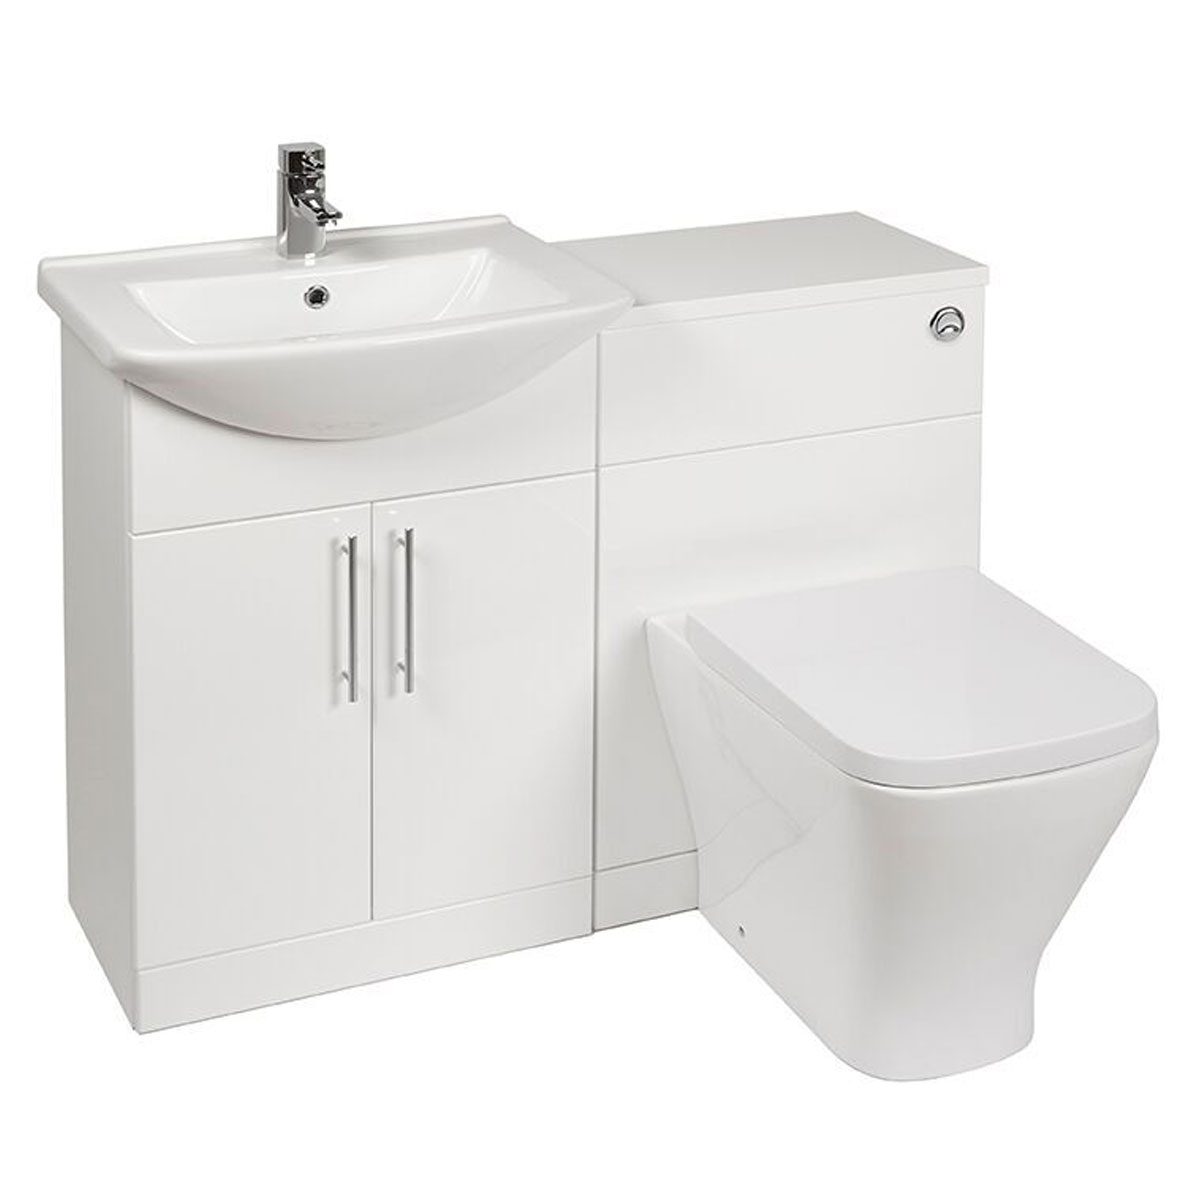 Verona F60s Combination Unit Ve79mf60s 1050mm Gloss White within size 1200 X 1200